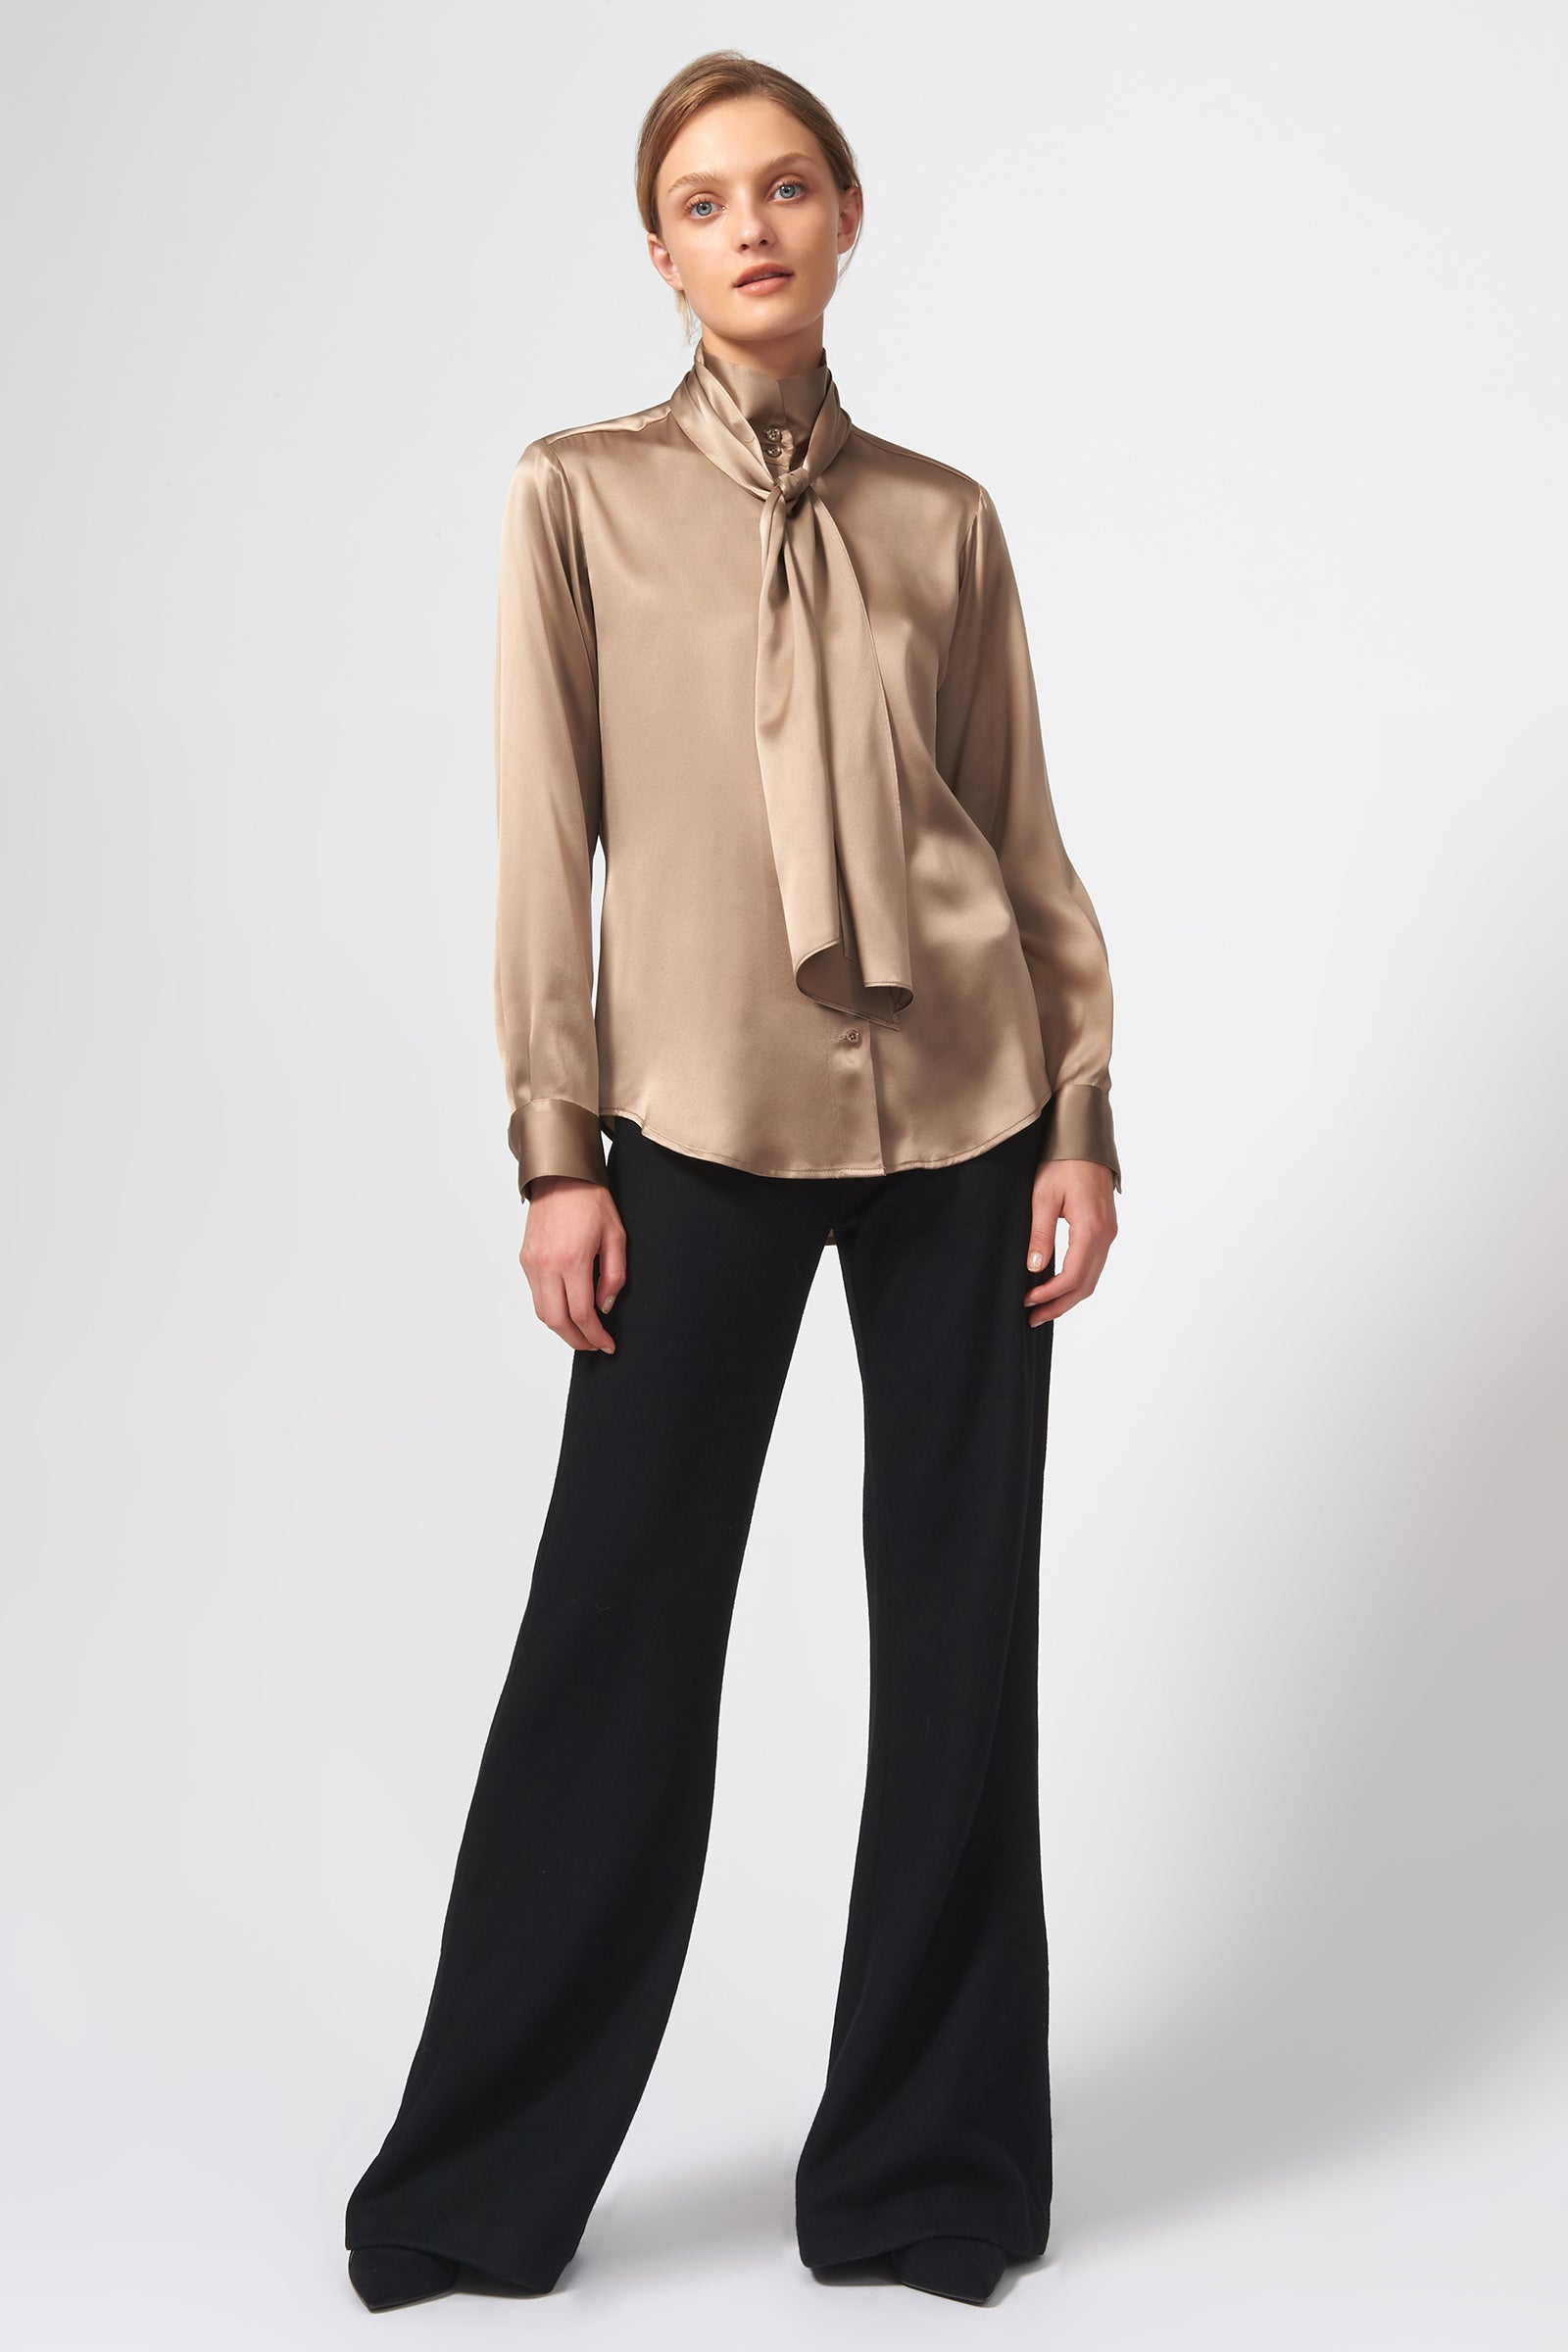 Kal Rieman Scarf Tie Blouse in Charmeuse on Model Full Front View